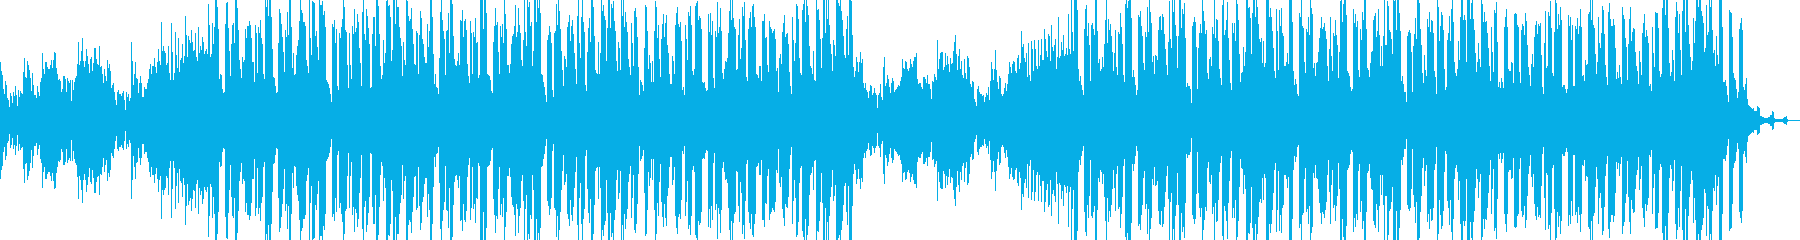 Koto Main: A quiet and modern BGM's reproduced waveform